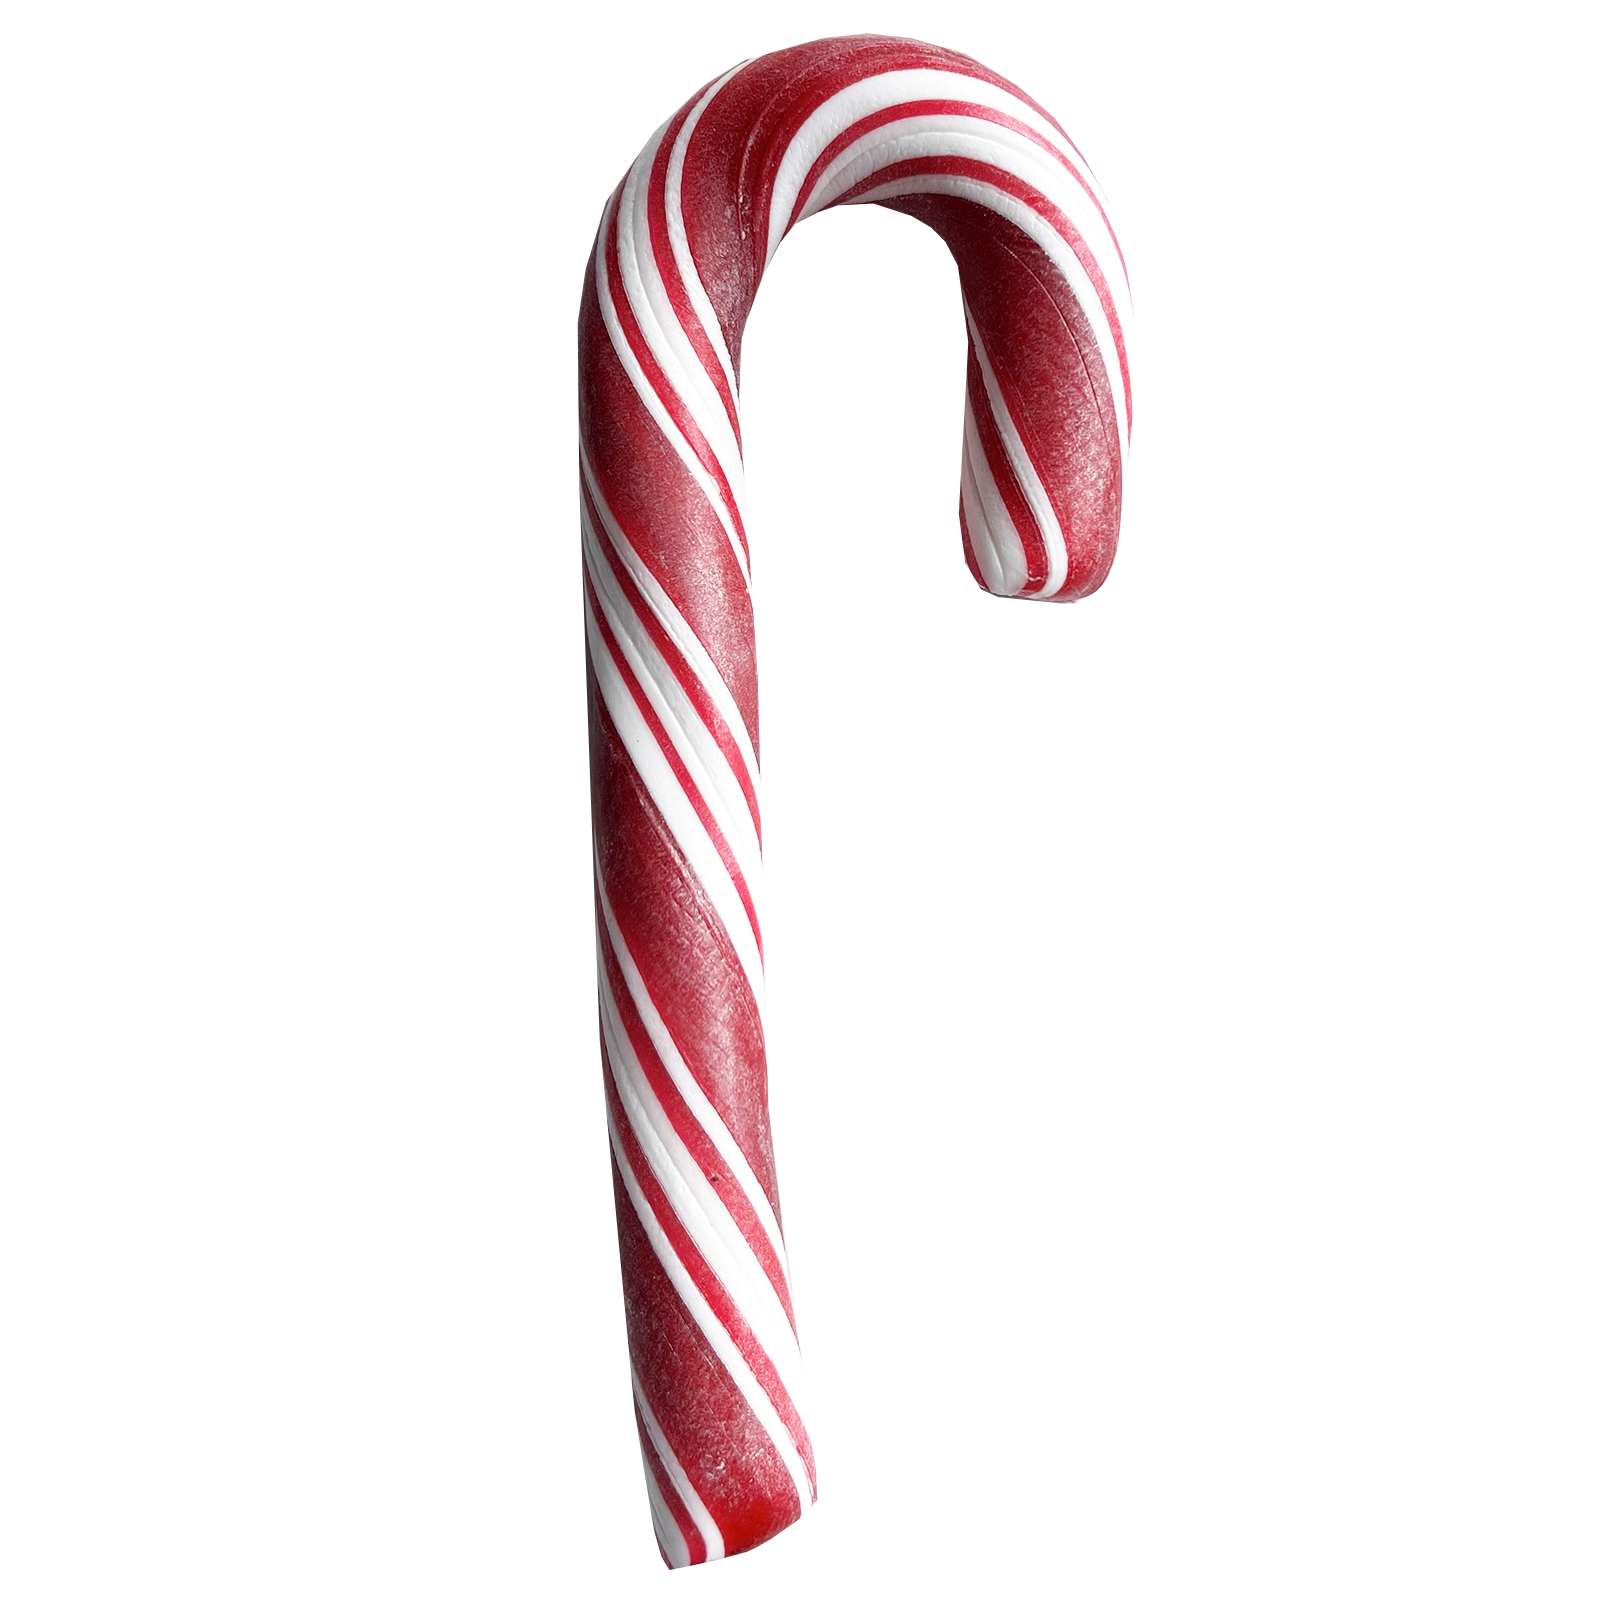 Peppermint Candy Cane large